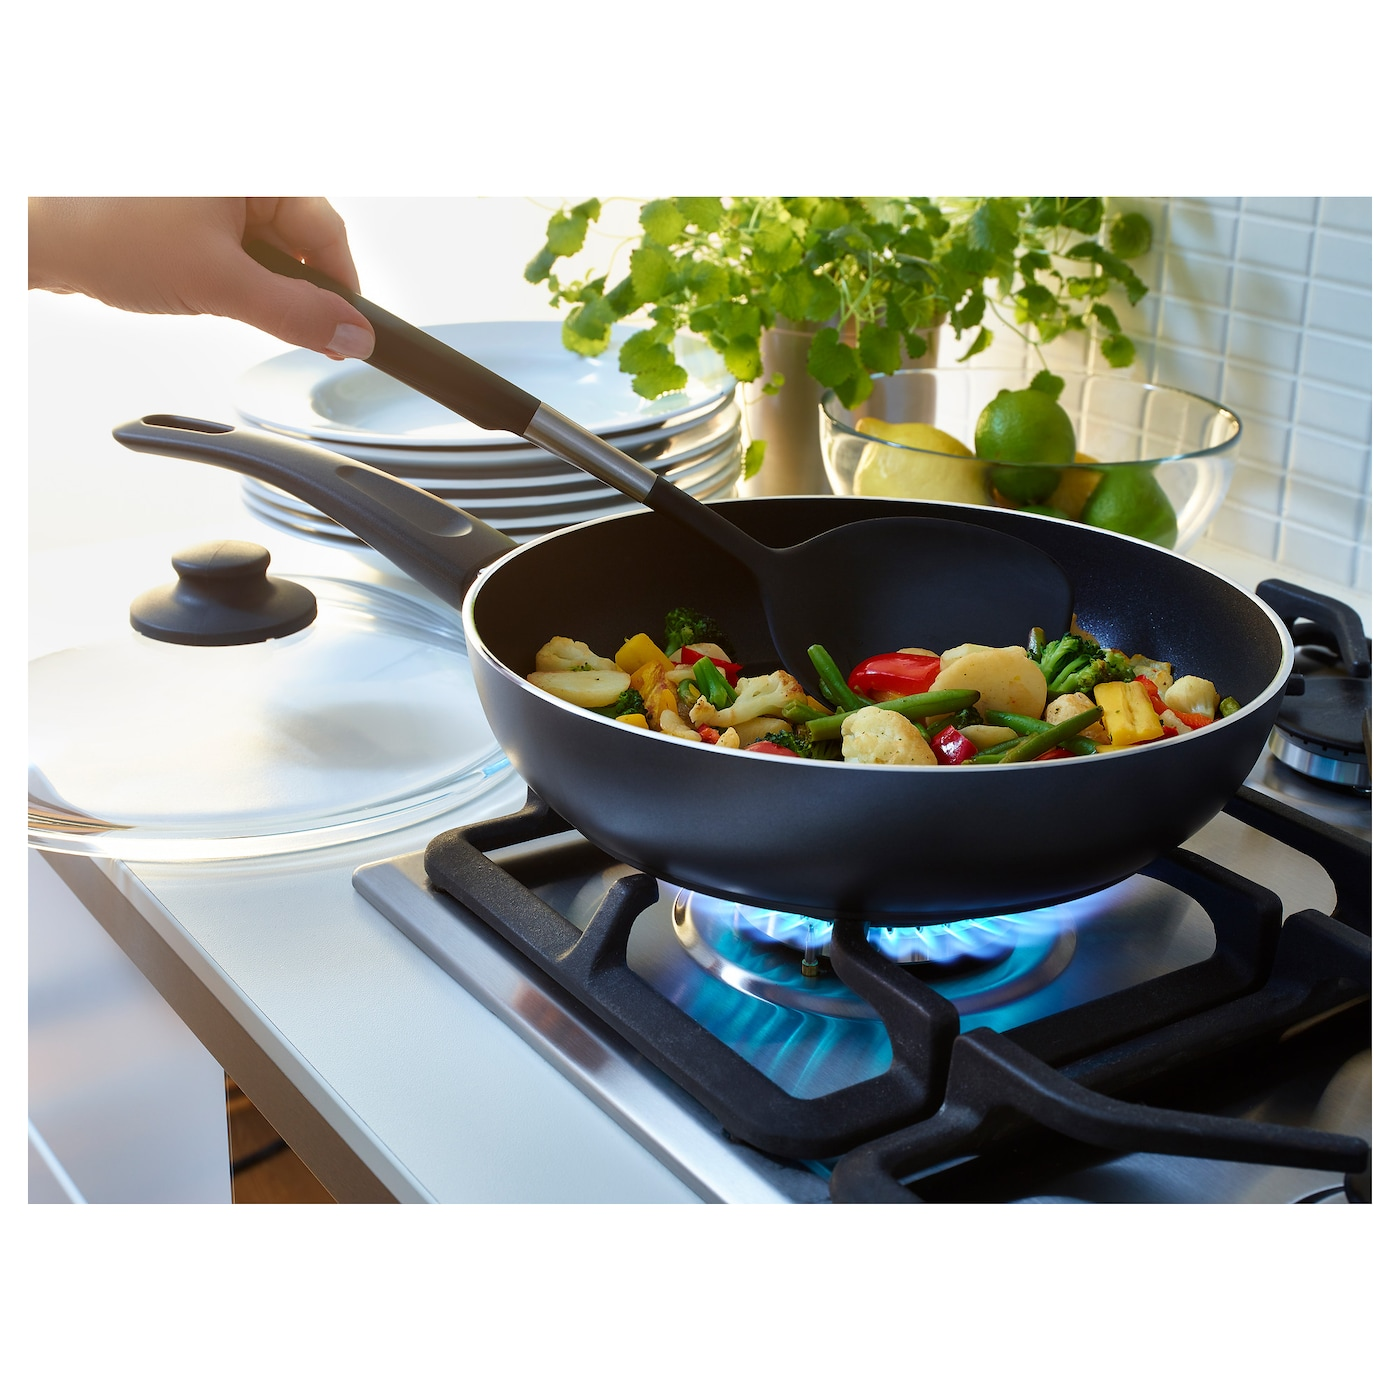 IKEA SKÄNKA sauté pan with lid Easy grip handle makes the pan easy to lift.